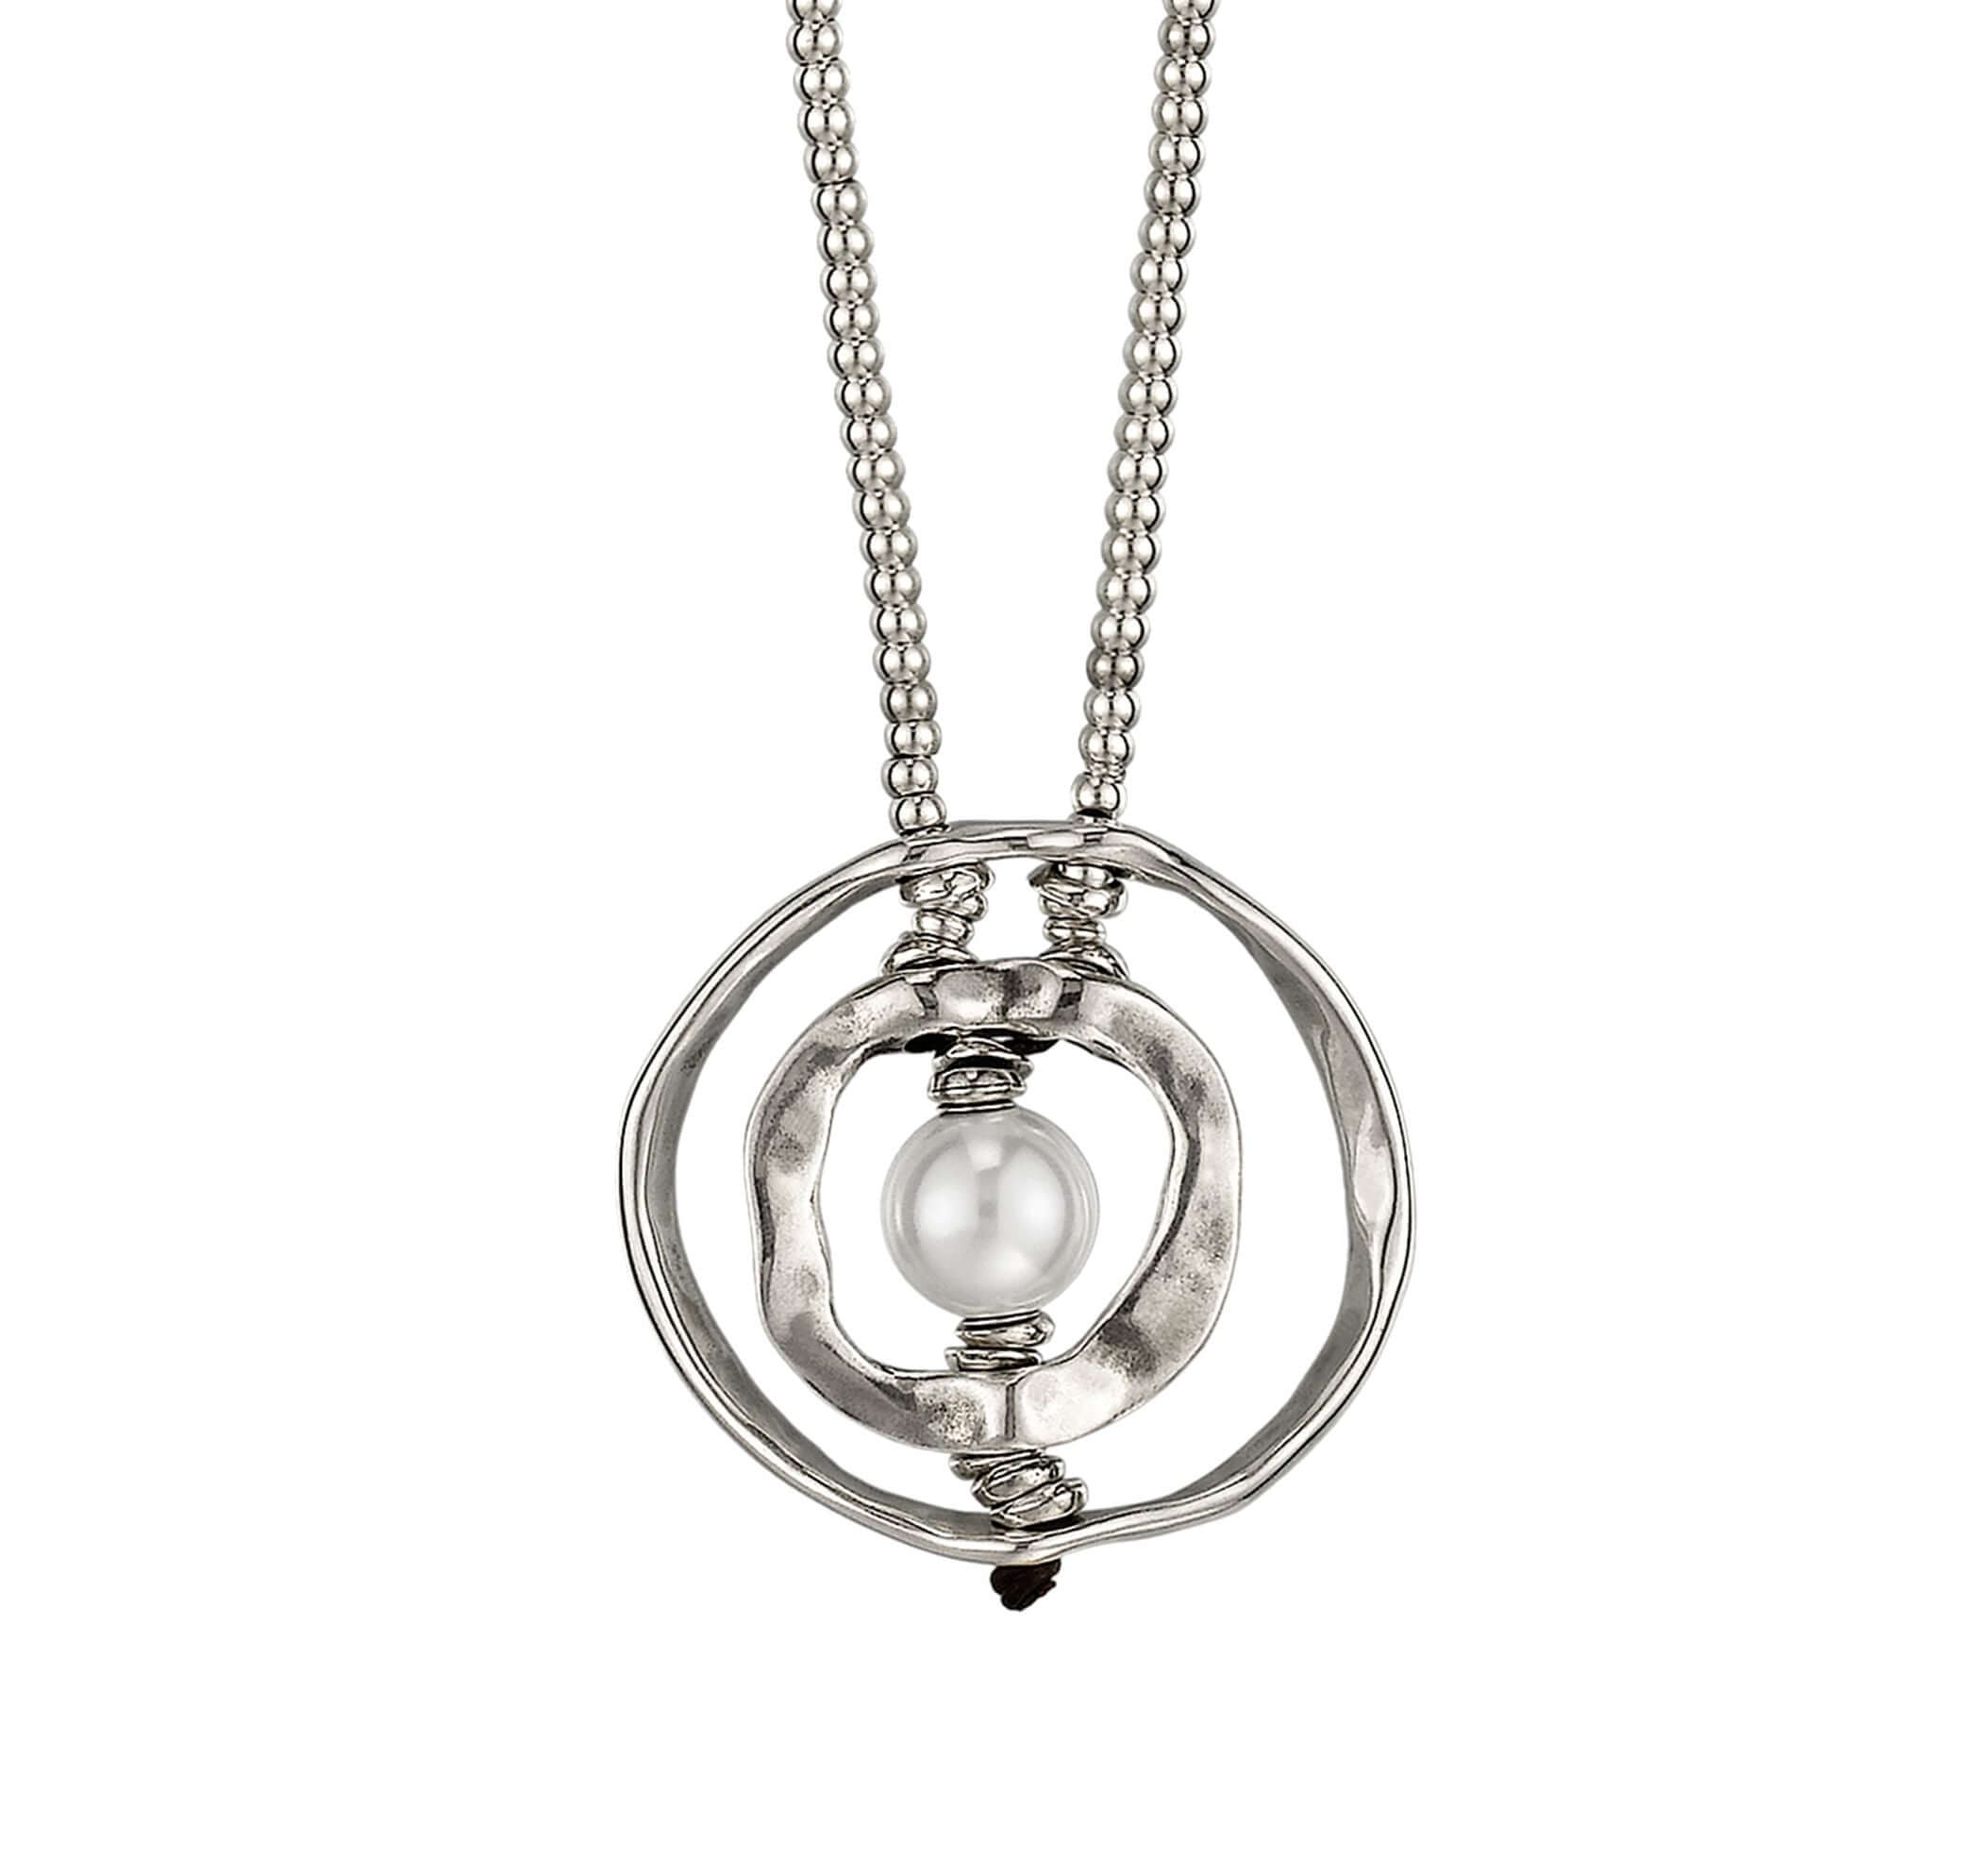 A Pearl of Wisdom Necklace